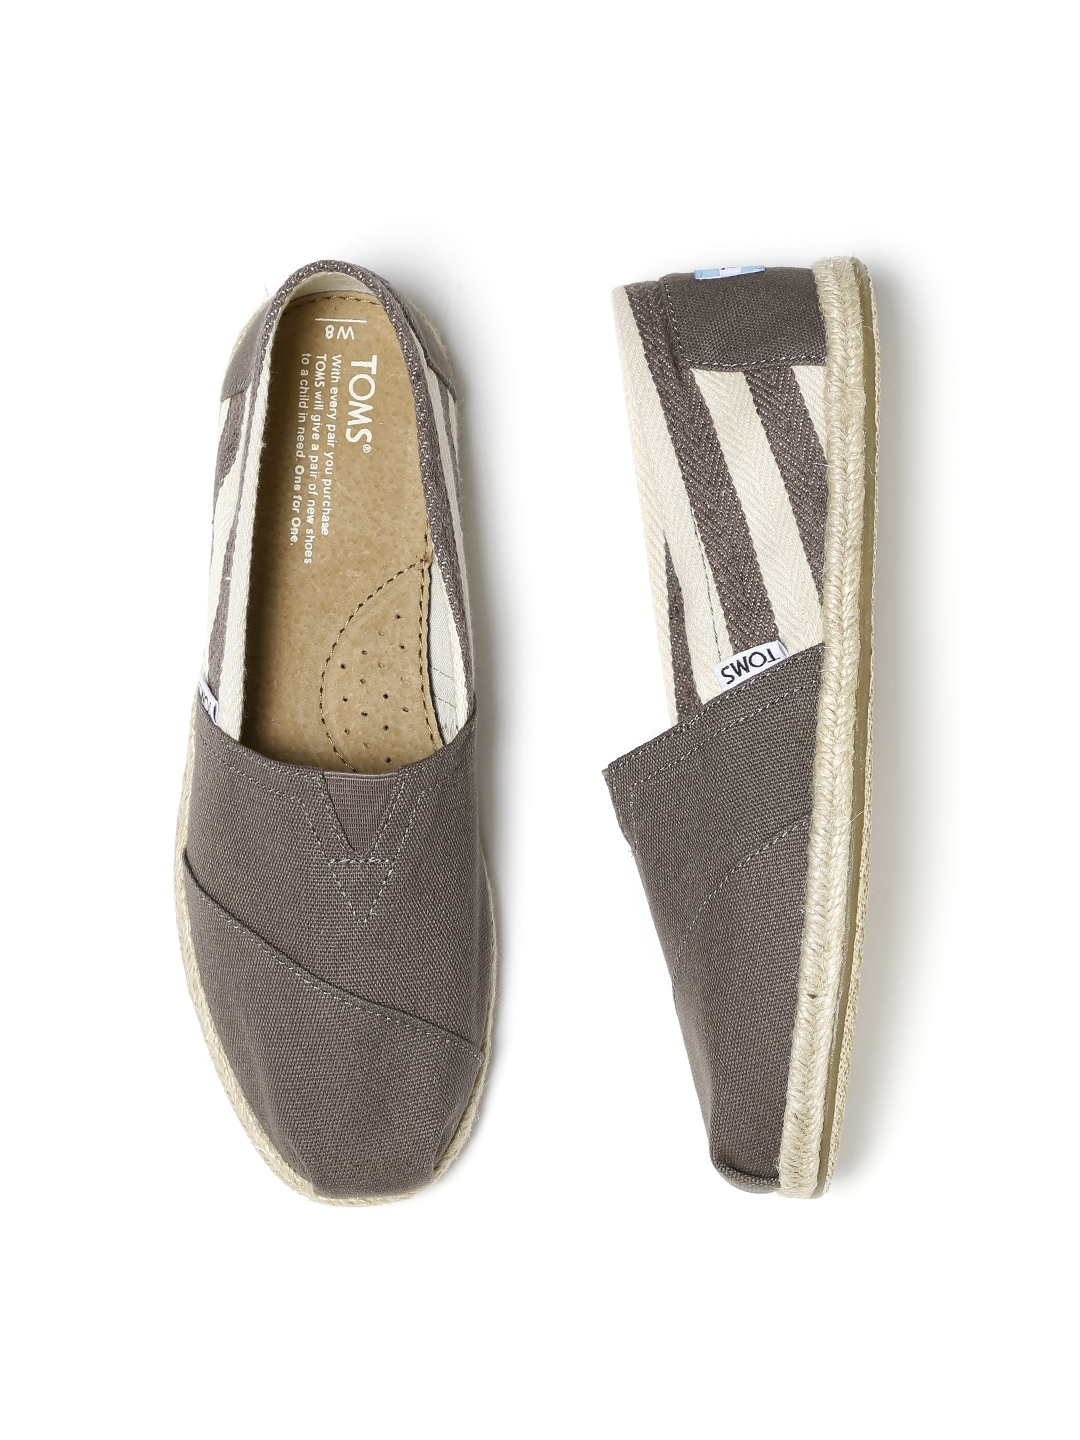 15b7beffebd Buy TOMS Women Taupe Striped Espadrilles - Casual Shoes for Women 1539837